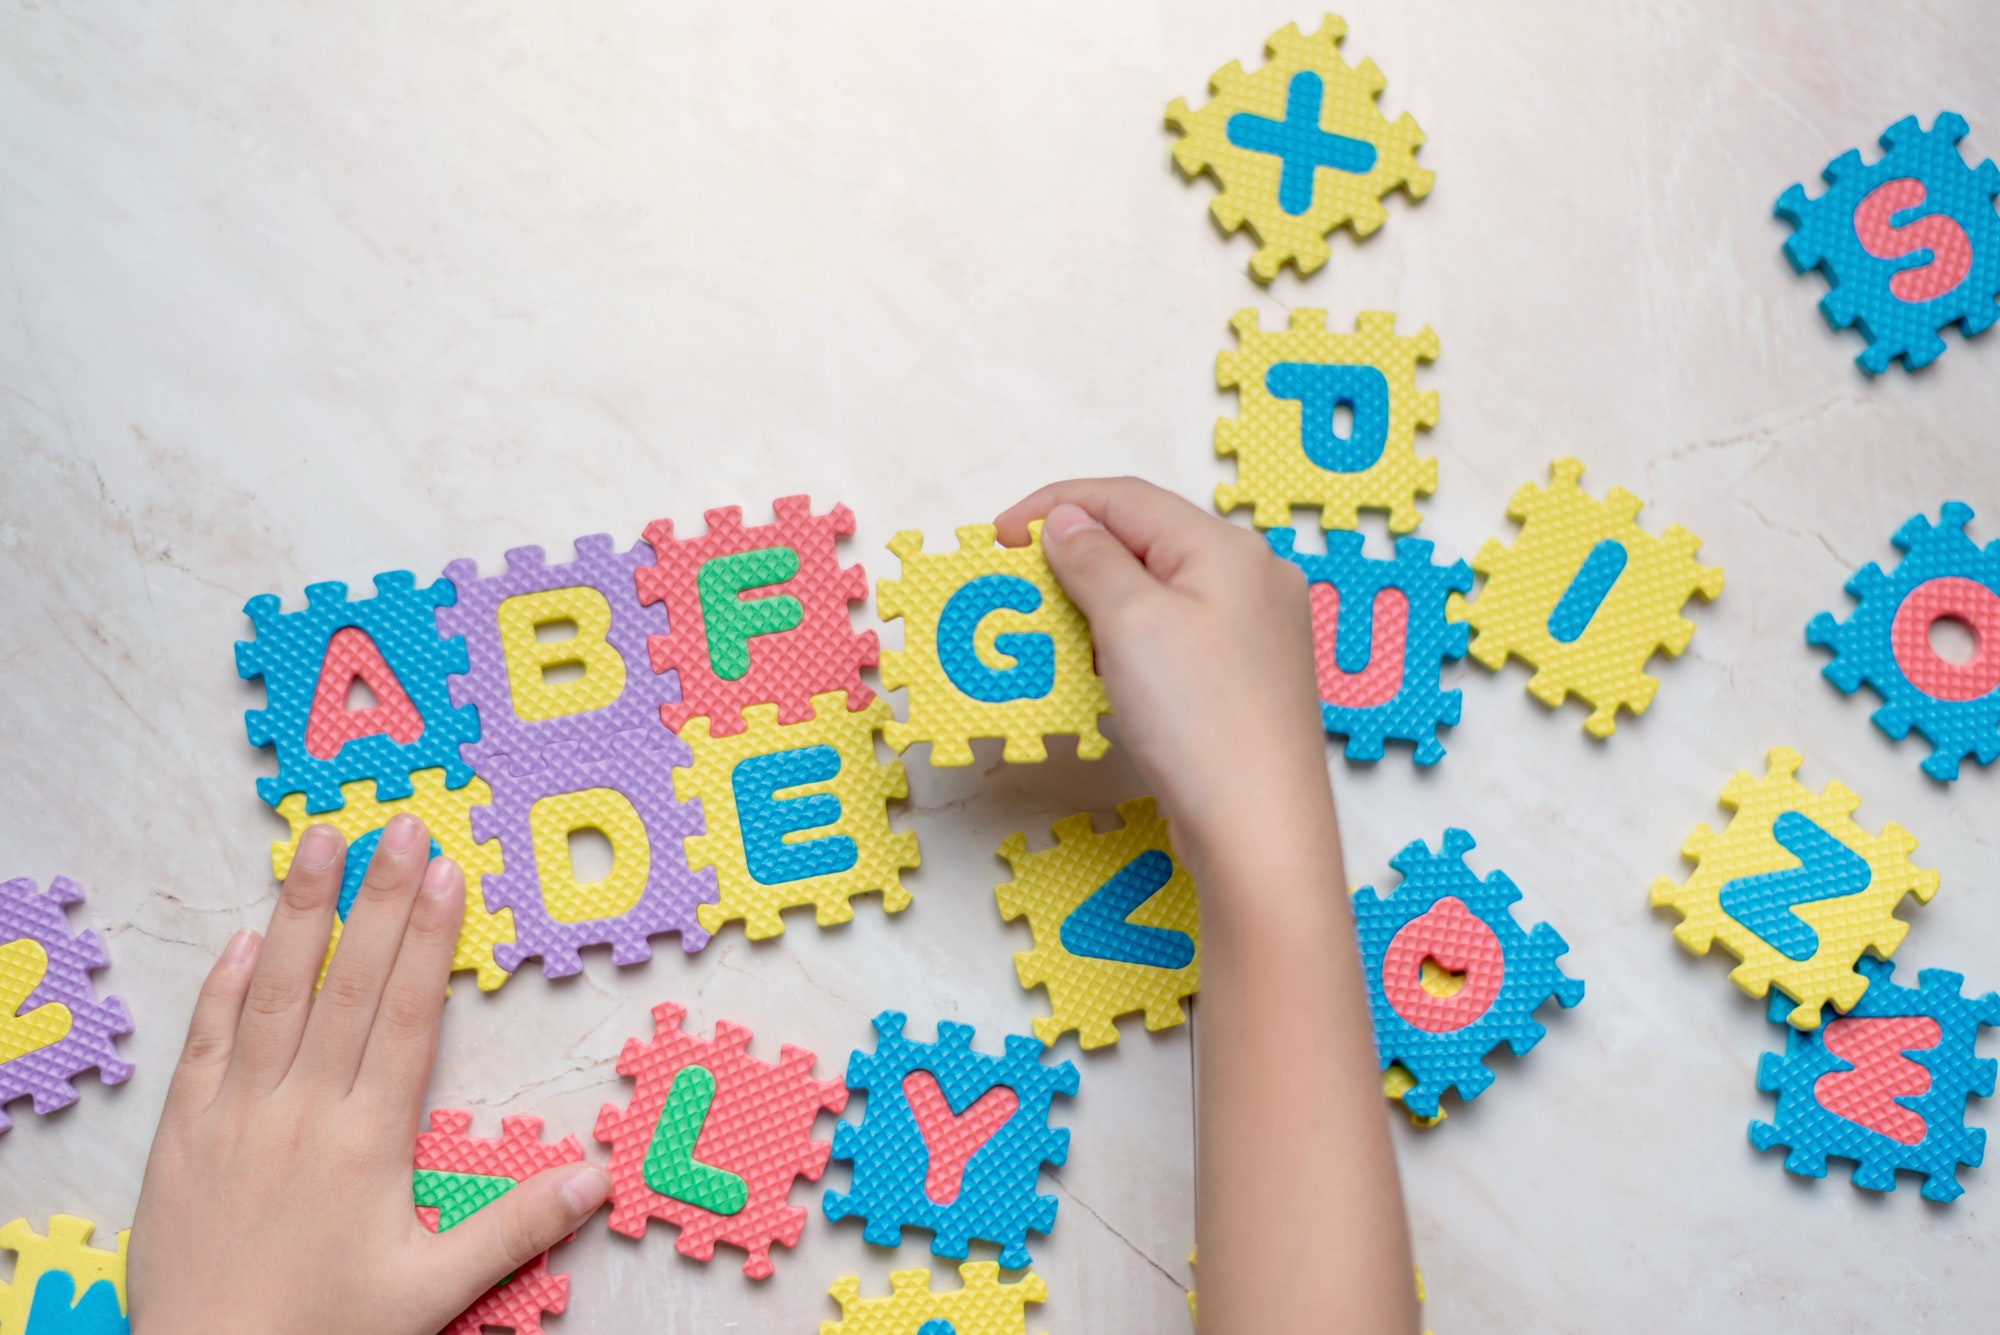 Child play alphabet puzzle